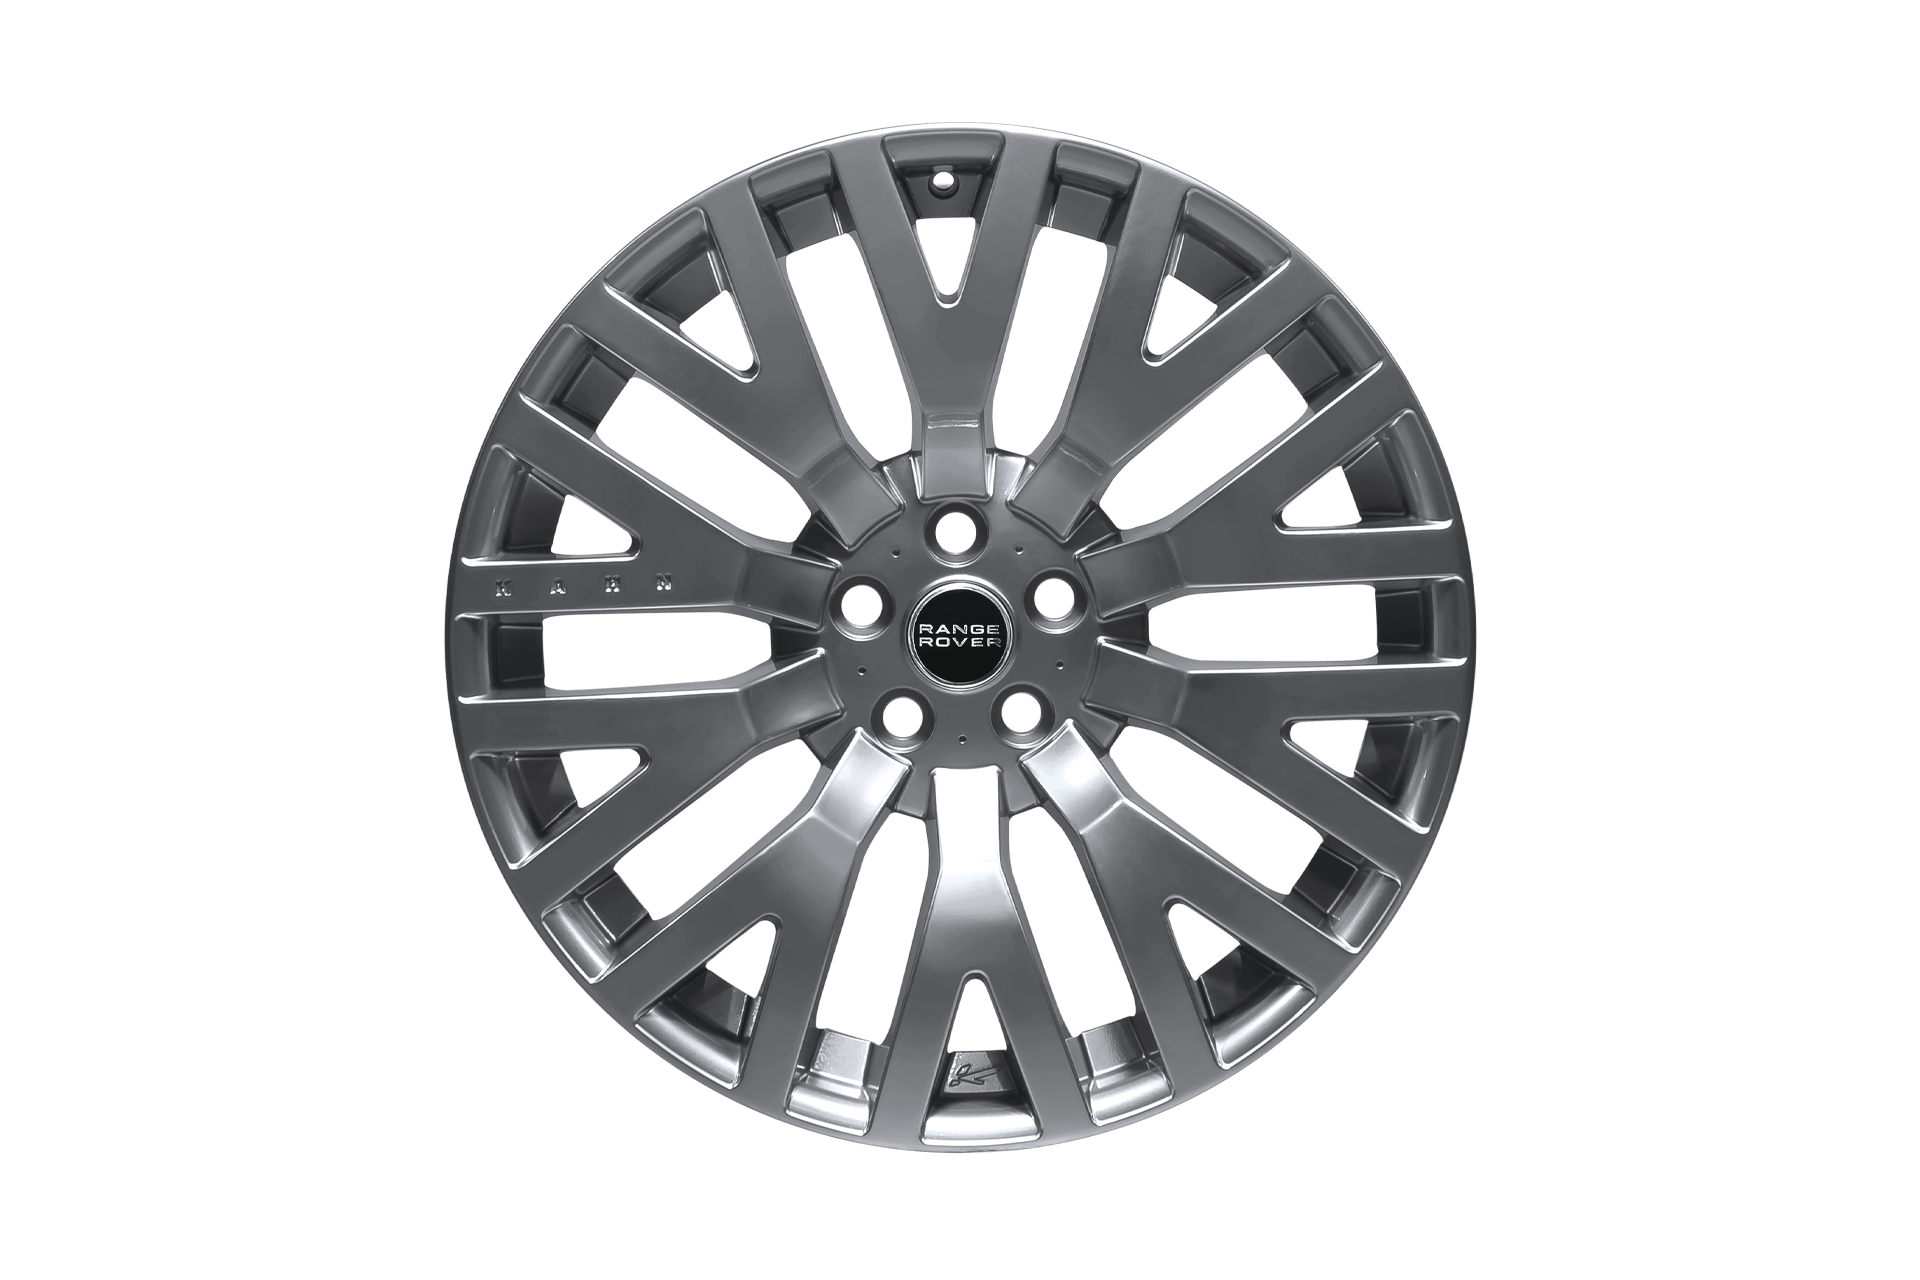 Range Rover (2002-2009) Rs Light Alloy Wheels by Kahn - Image 3447